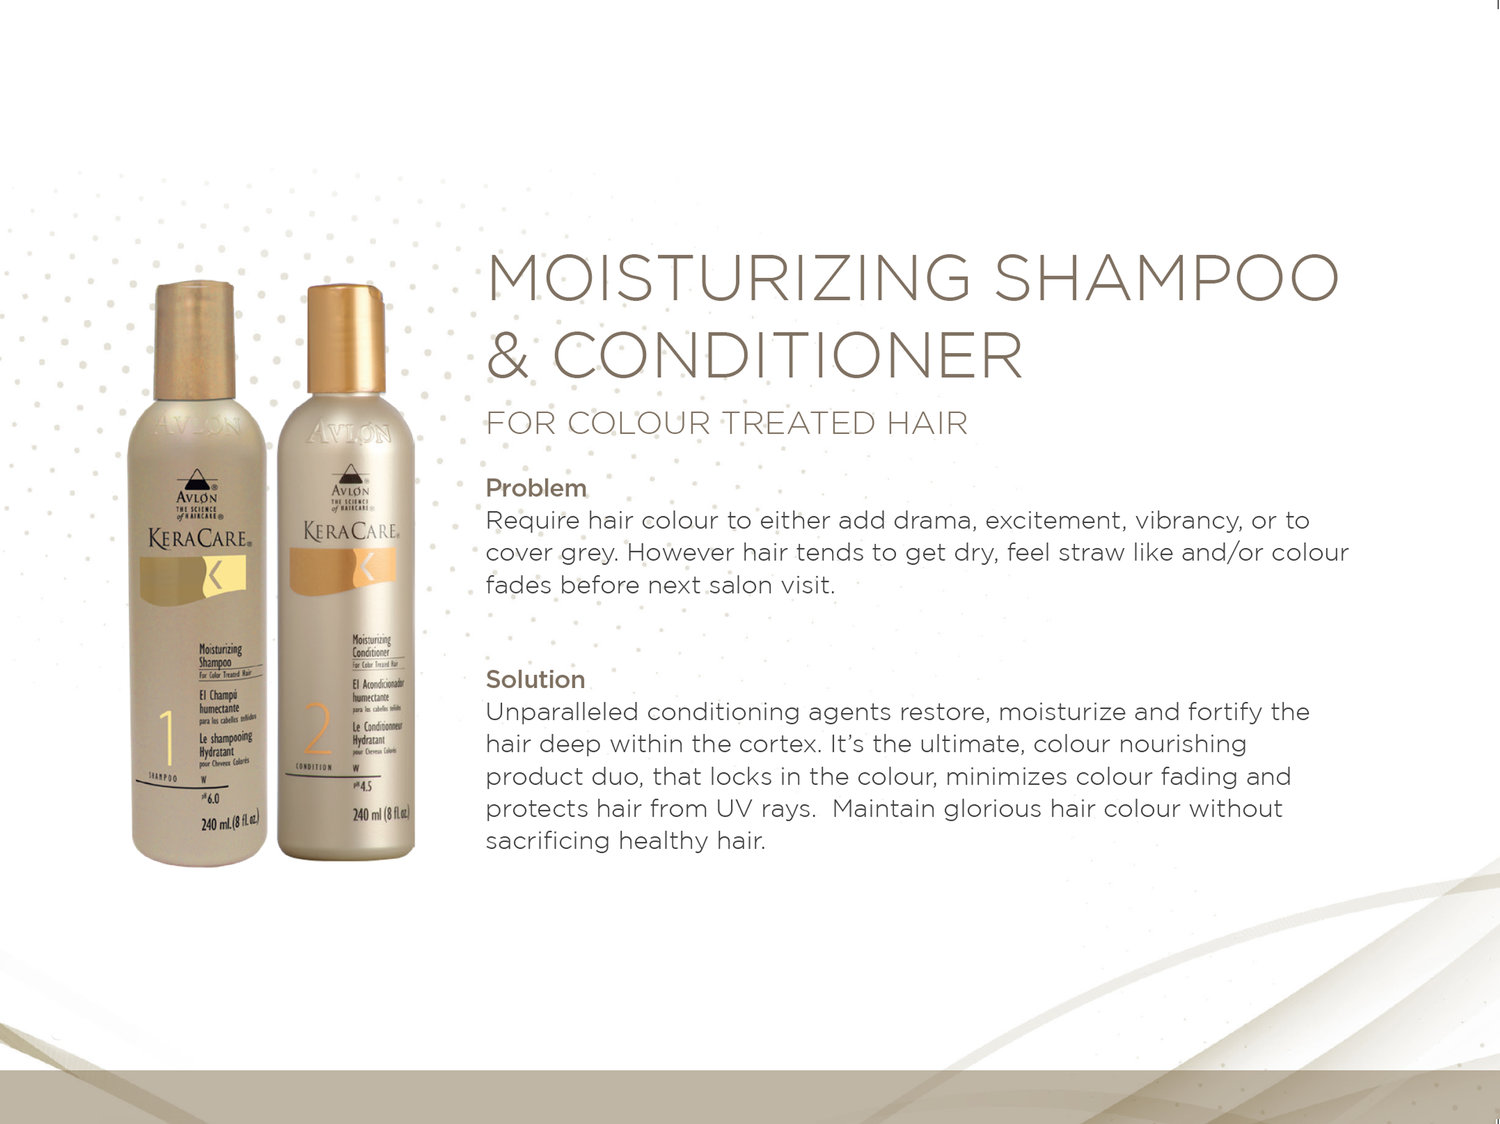 KeraCare Moisturizing Shampoo & Conditioner